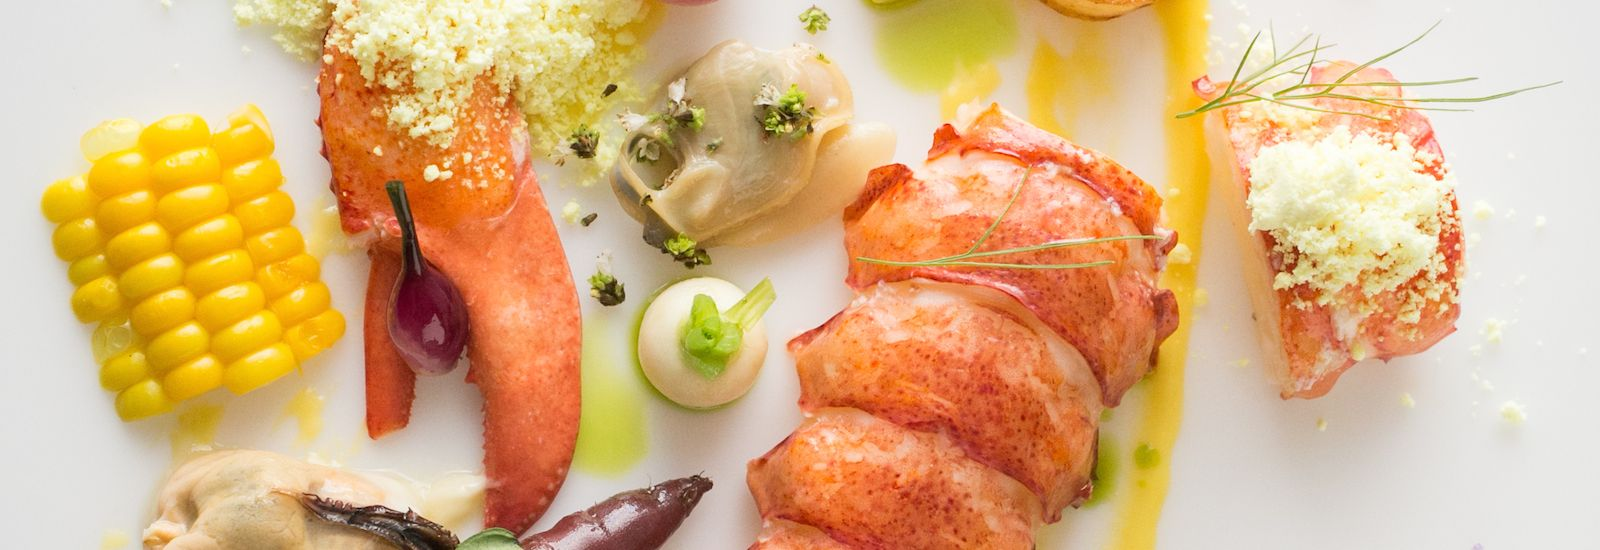 Lobster bakes are popular choices for rehearsal dinners.